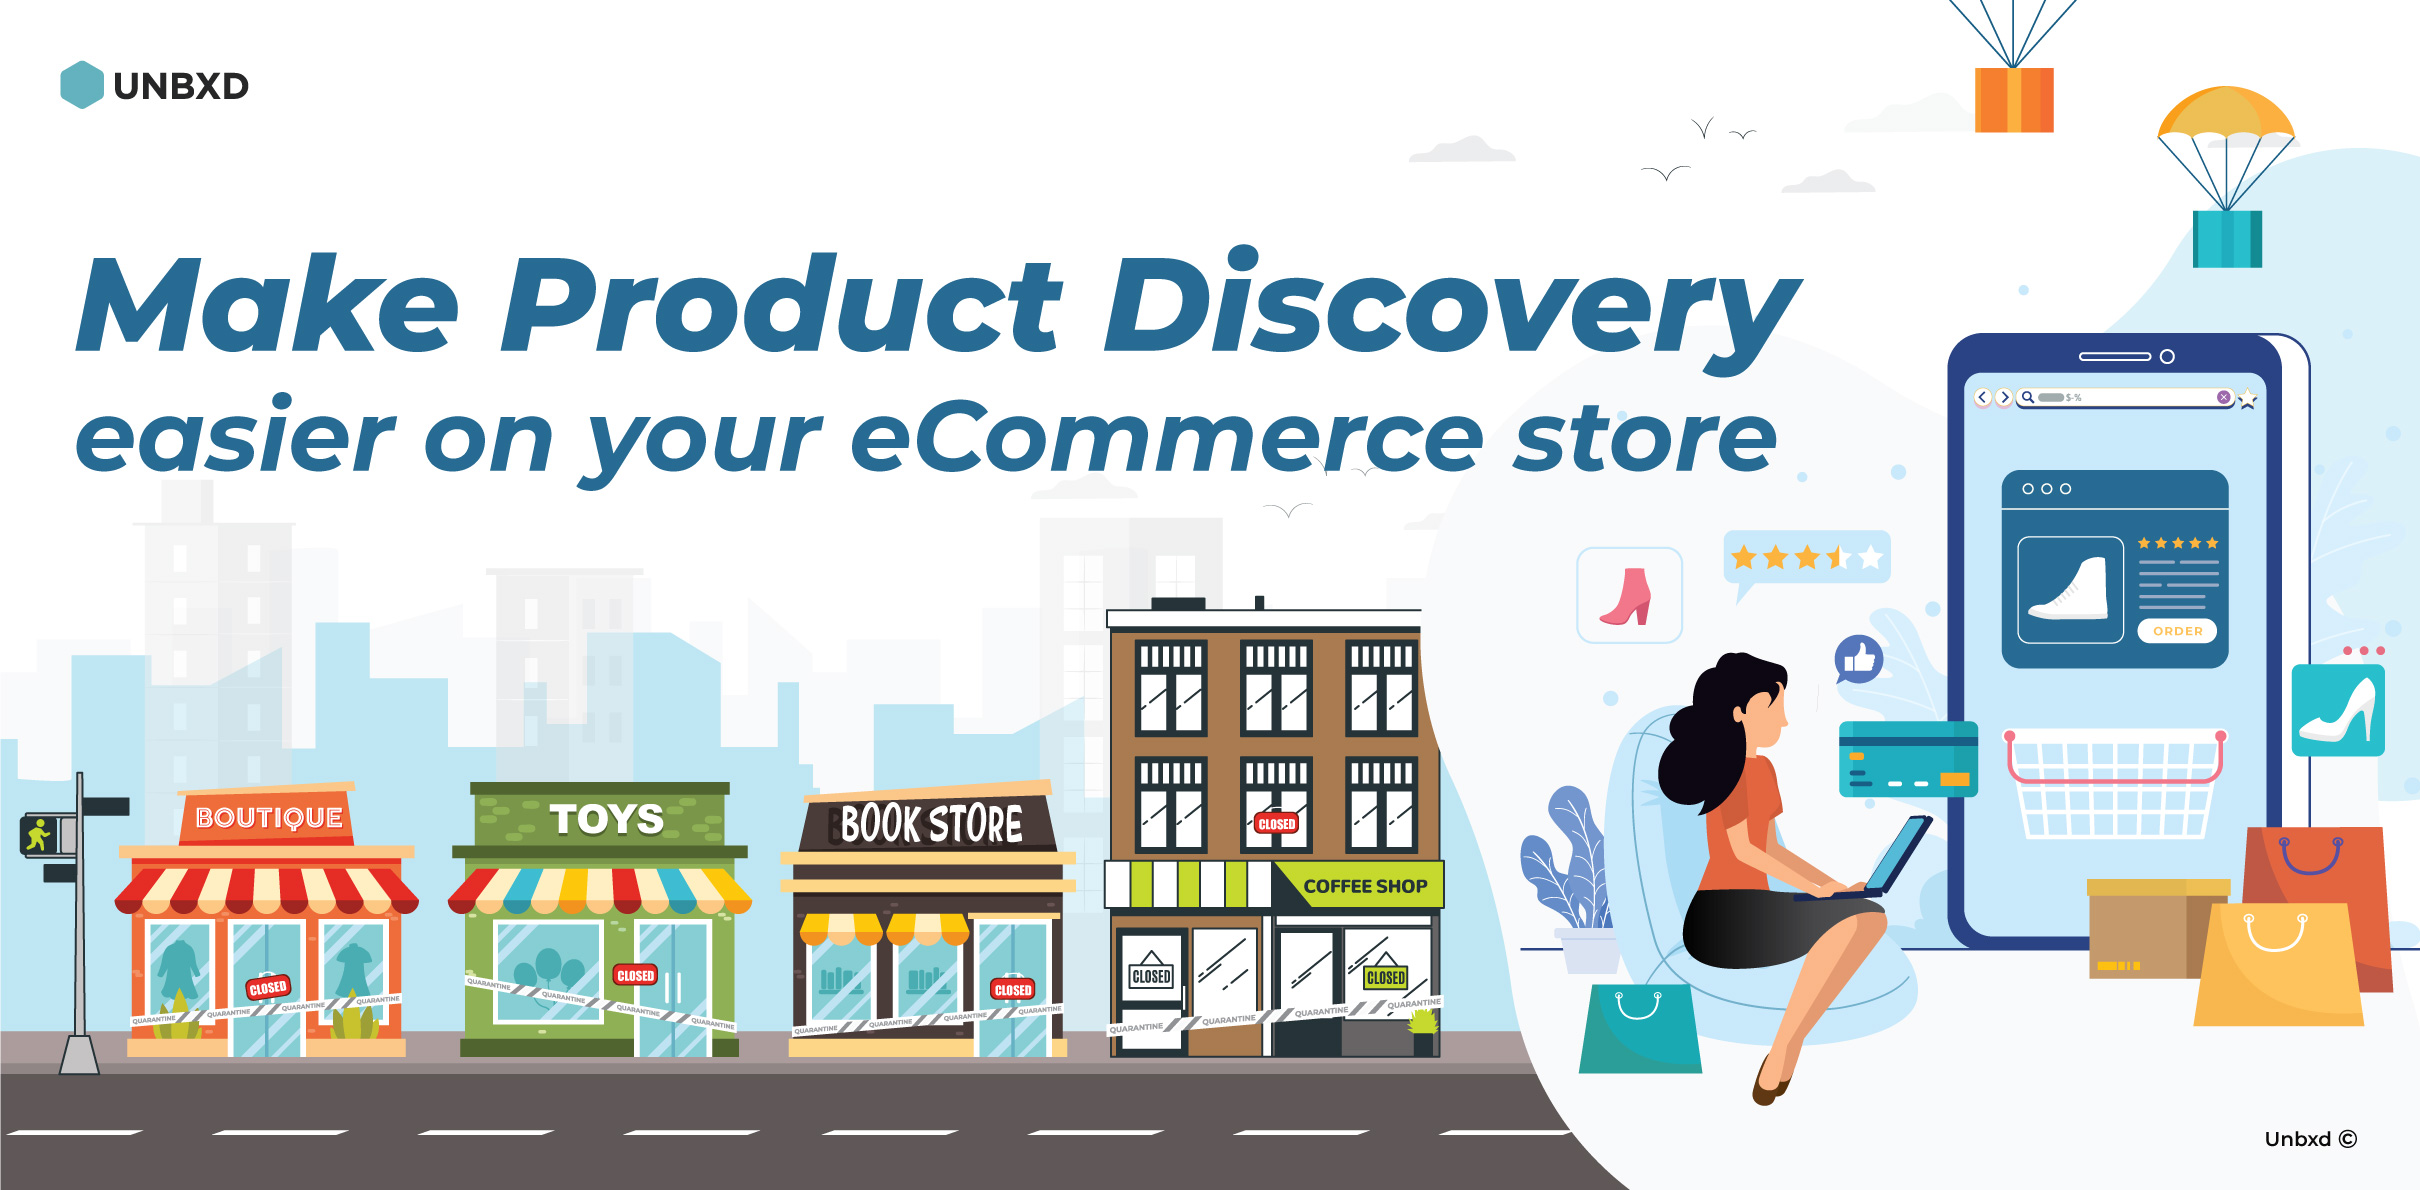 Why now is a good time to fix product discovery for your eCommerce store?